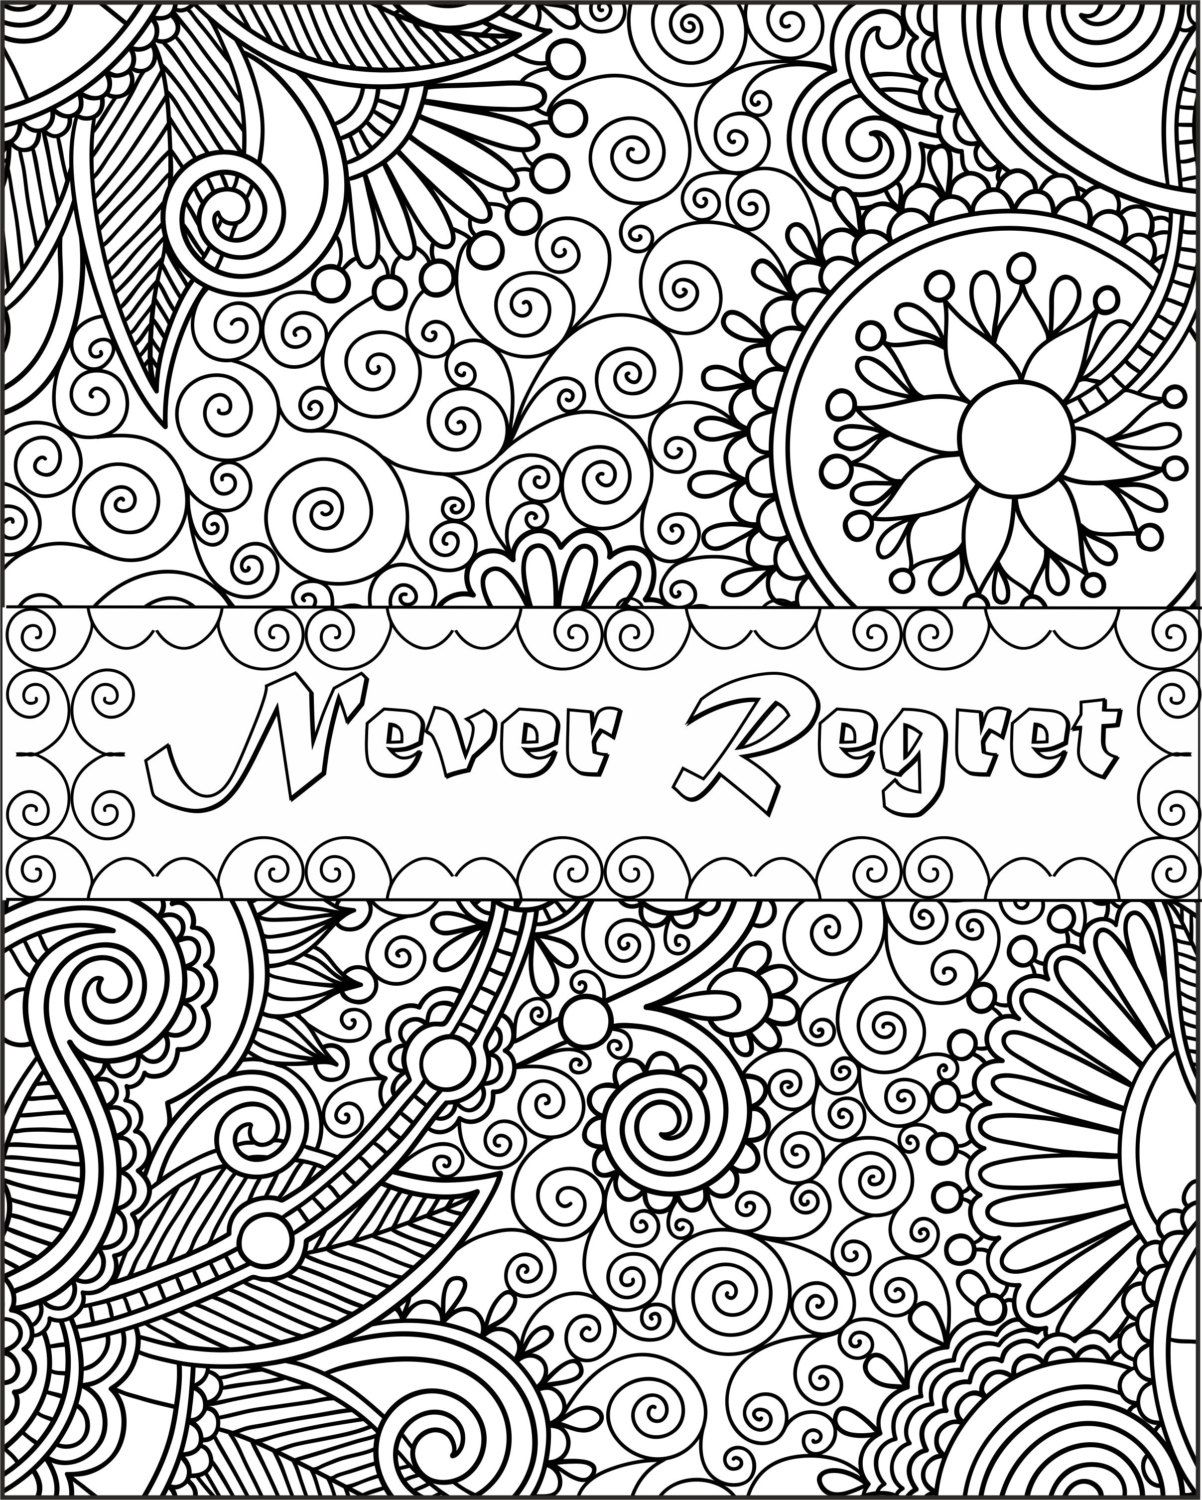 Never Regret Inspirational Fun Quotes Colouring Pages By